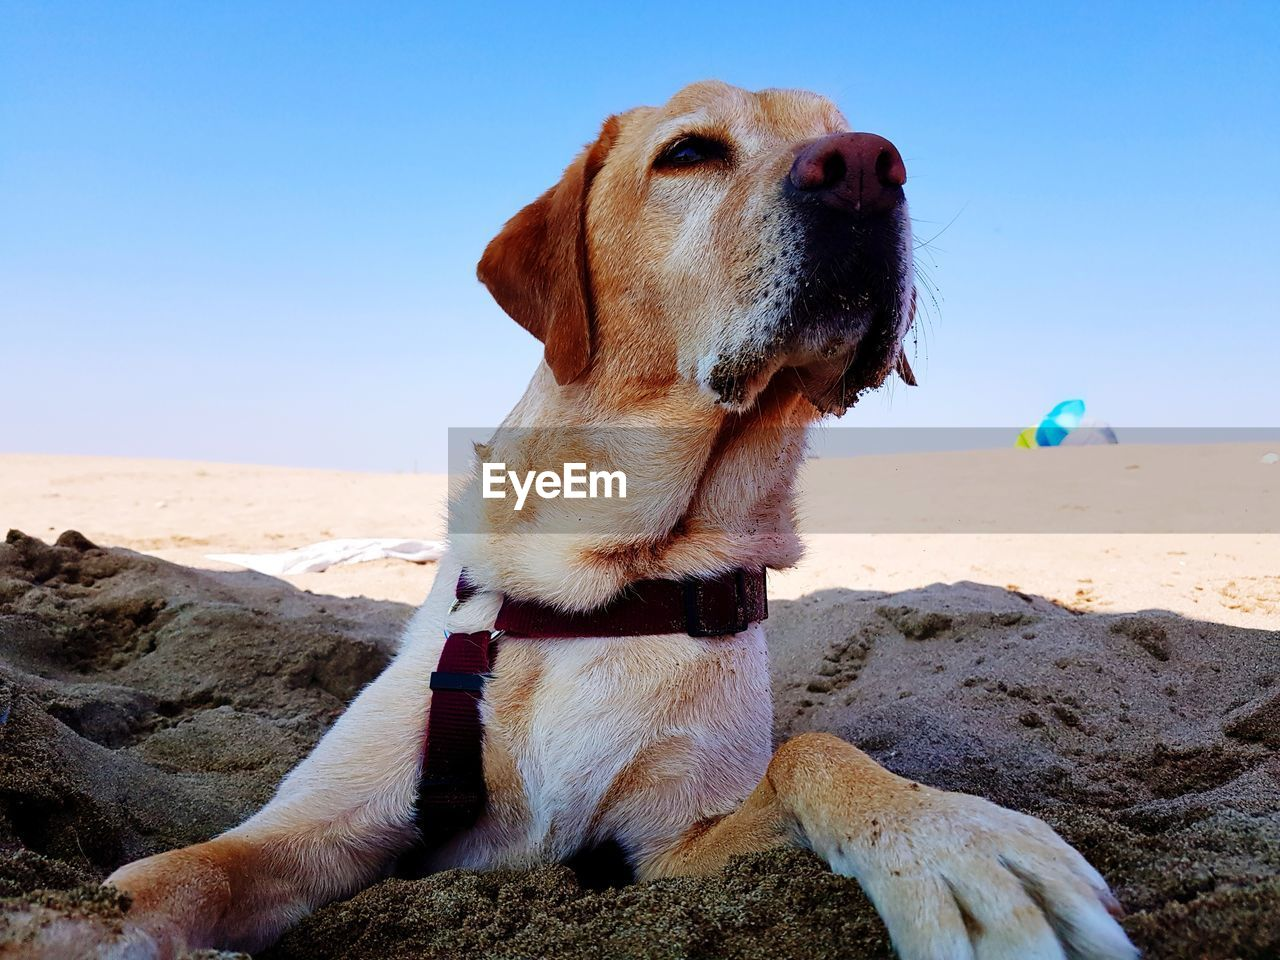 Dog looking away while sitting in sand at beach